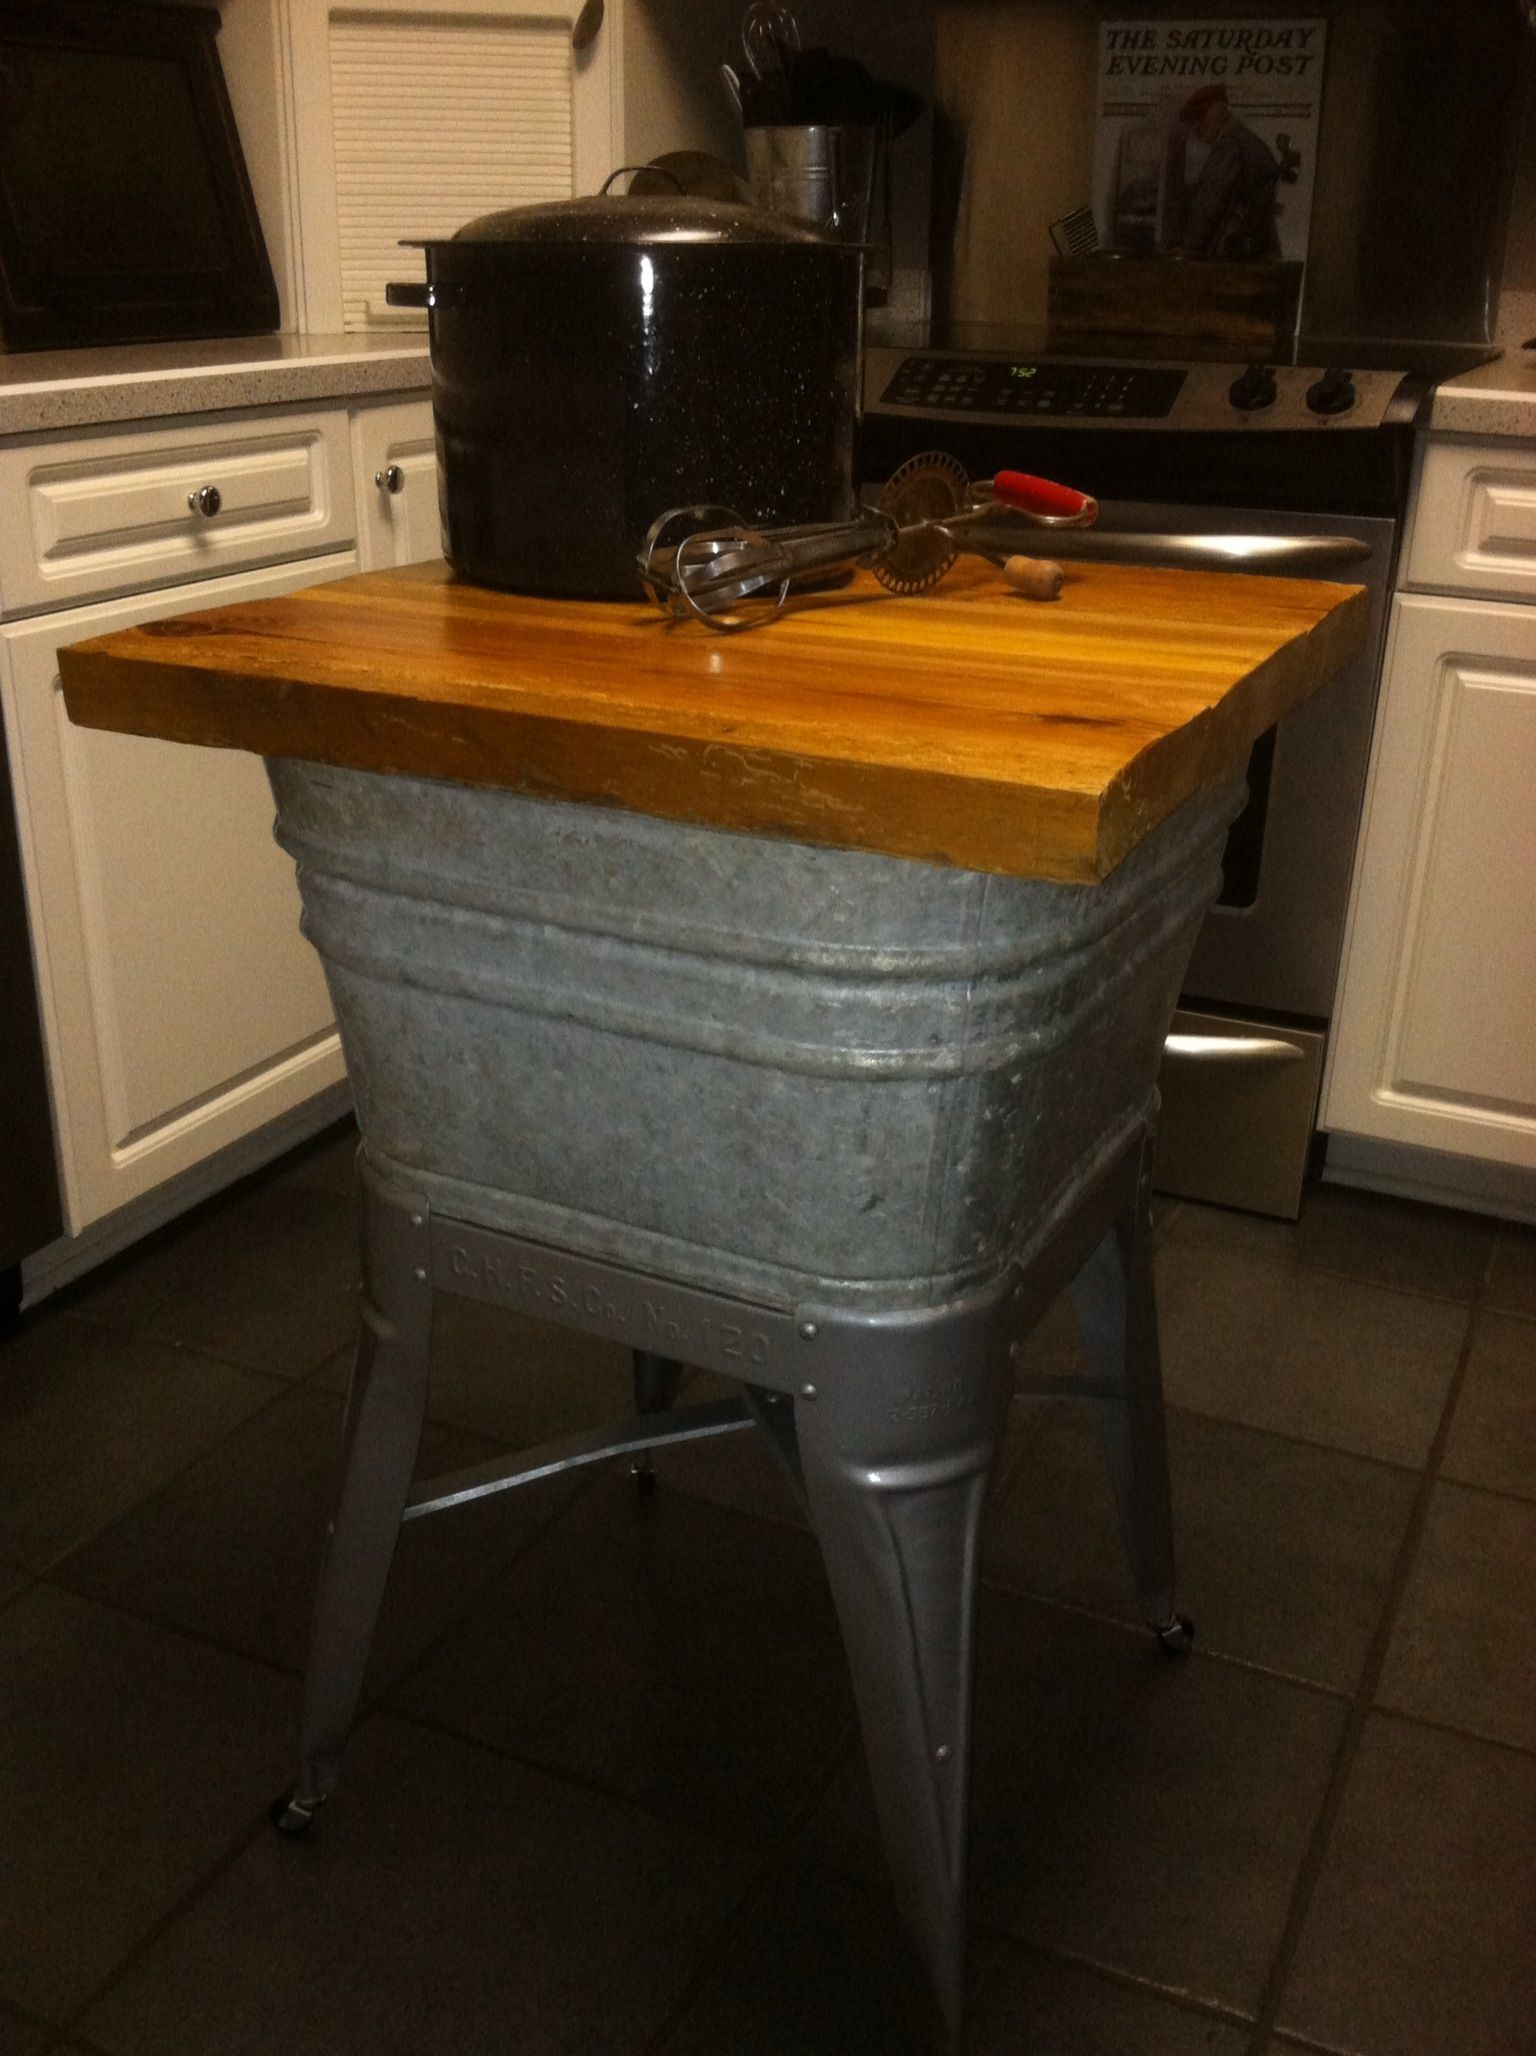 Old Galvanized Wash Tub Turned Repurposed Into Kitchen Island I Ve Used Mine As A Microwave Stand In My Country Kit Primitive Kitchen Rustic Kitchen Wash Tubs